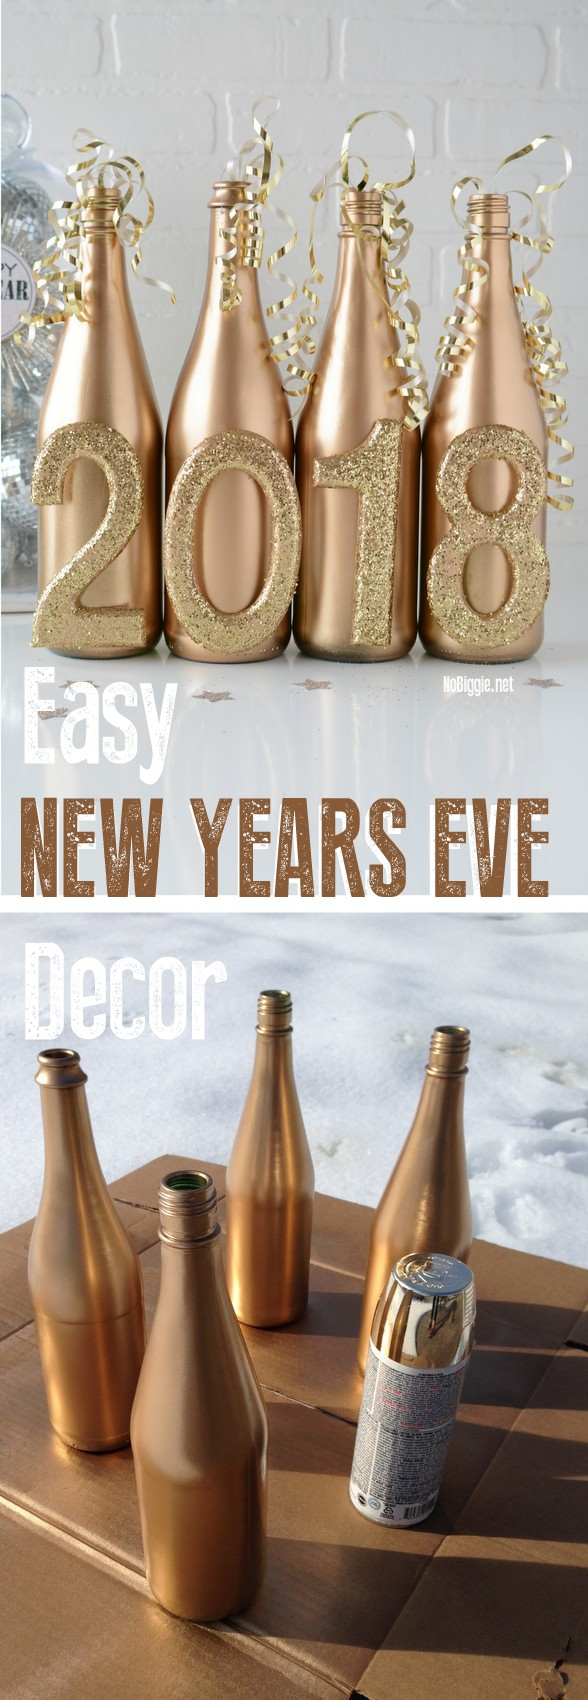 New Year's Eve Party Decor | NoBiggie.net